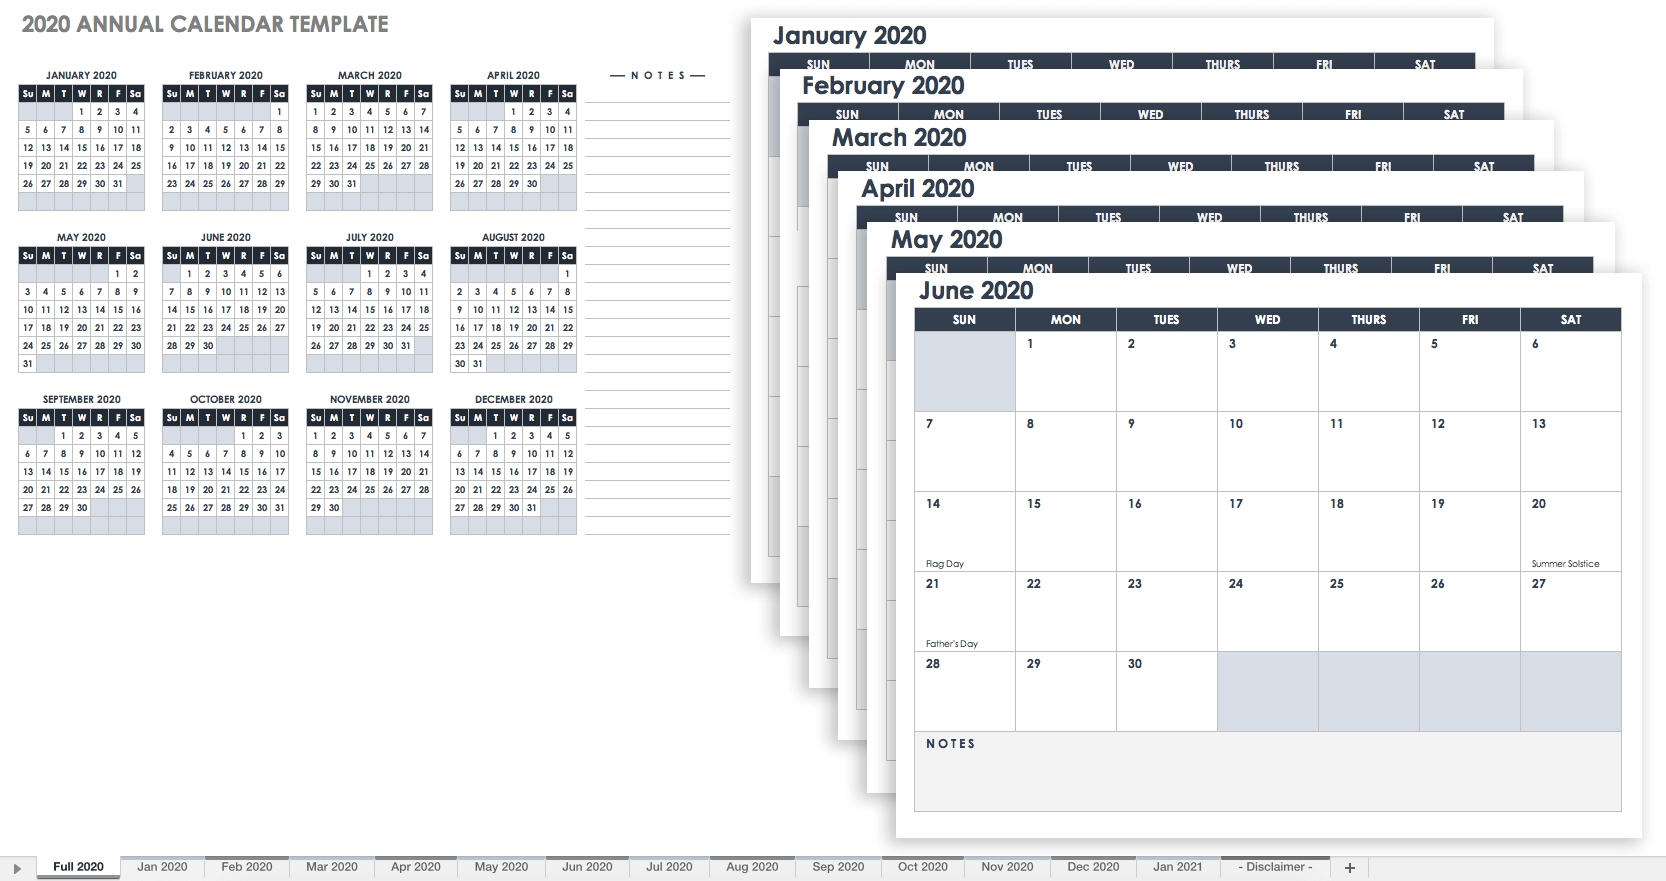 Free Blank Calendar Templates - Smartsheet Calendar Template To Fill In